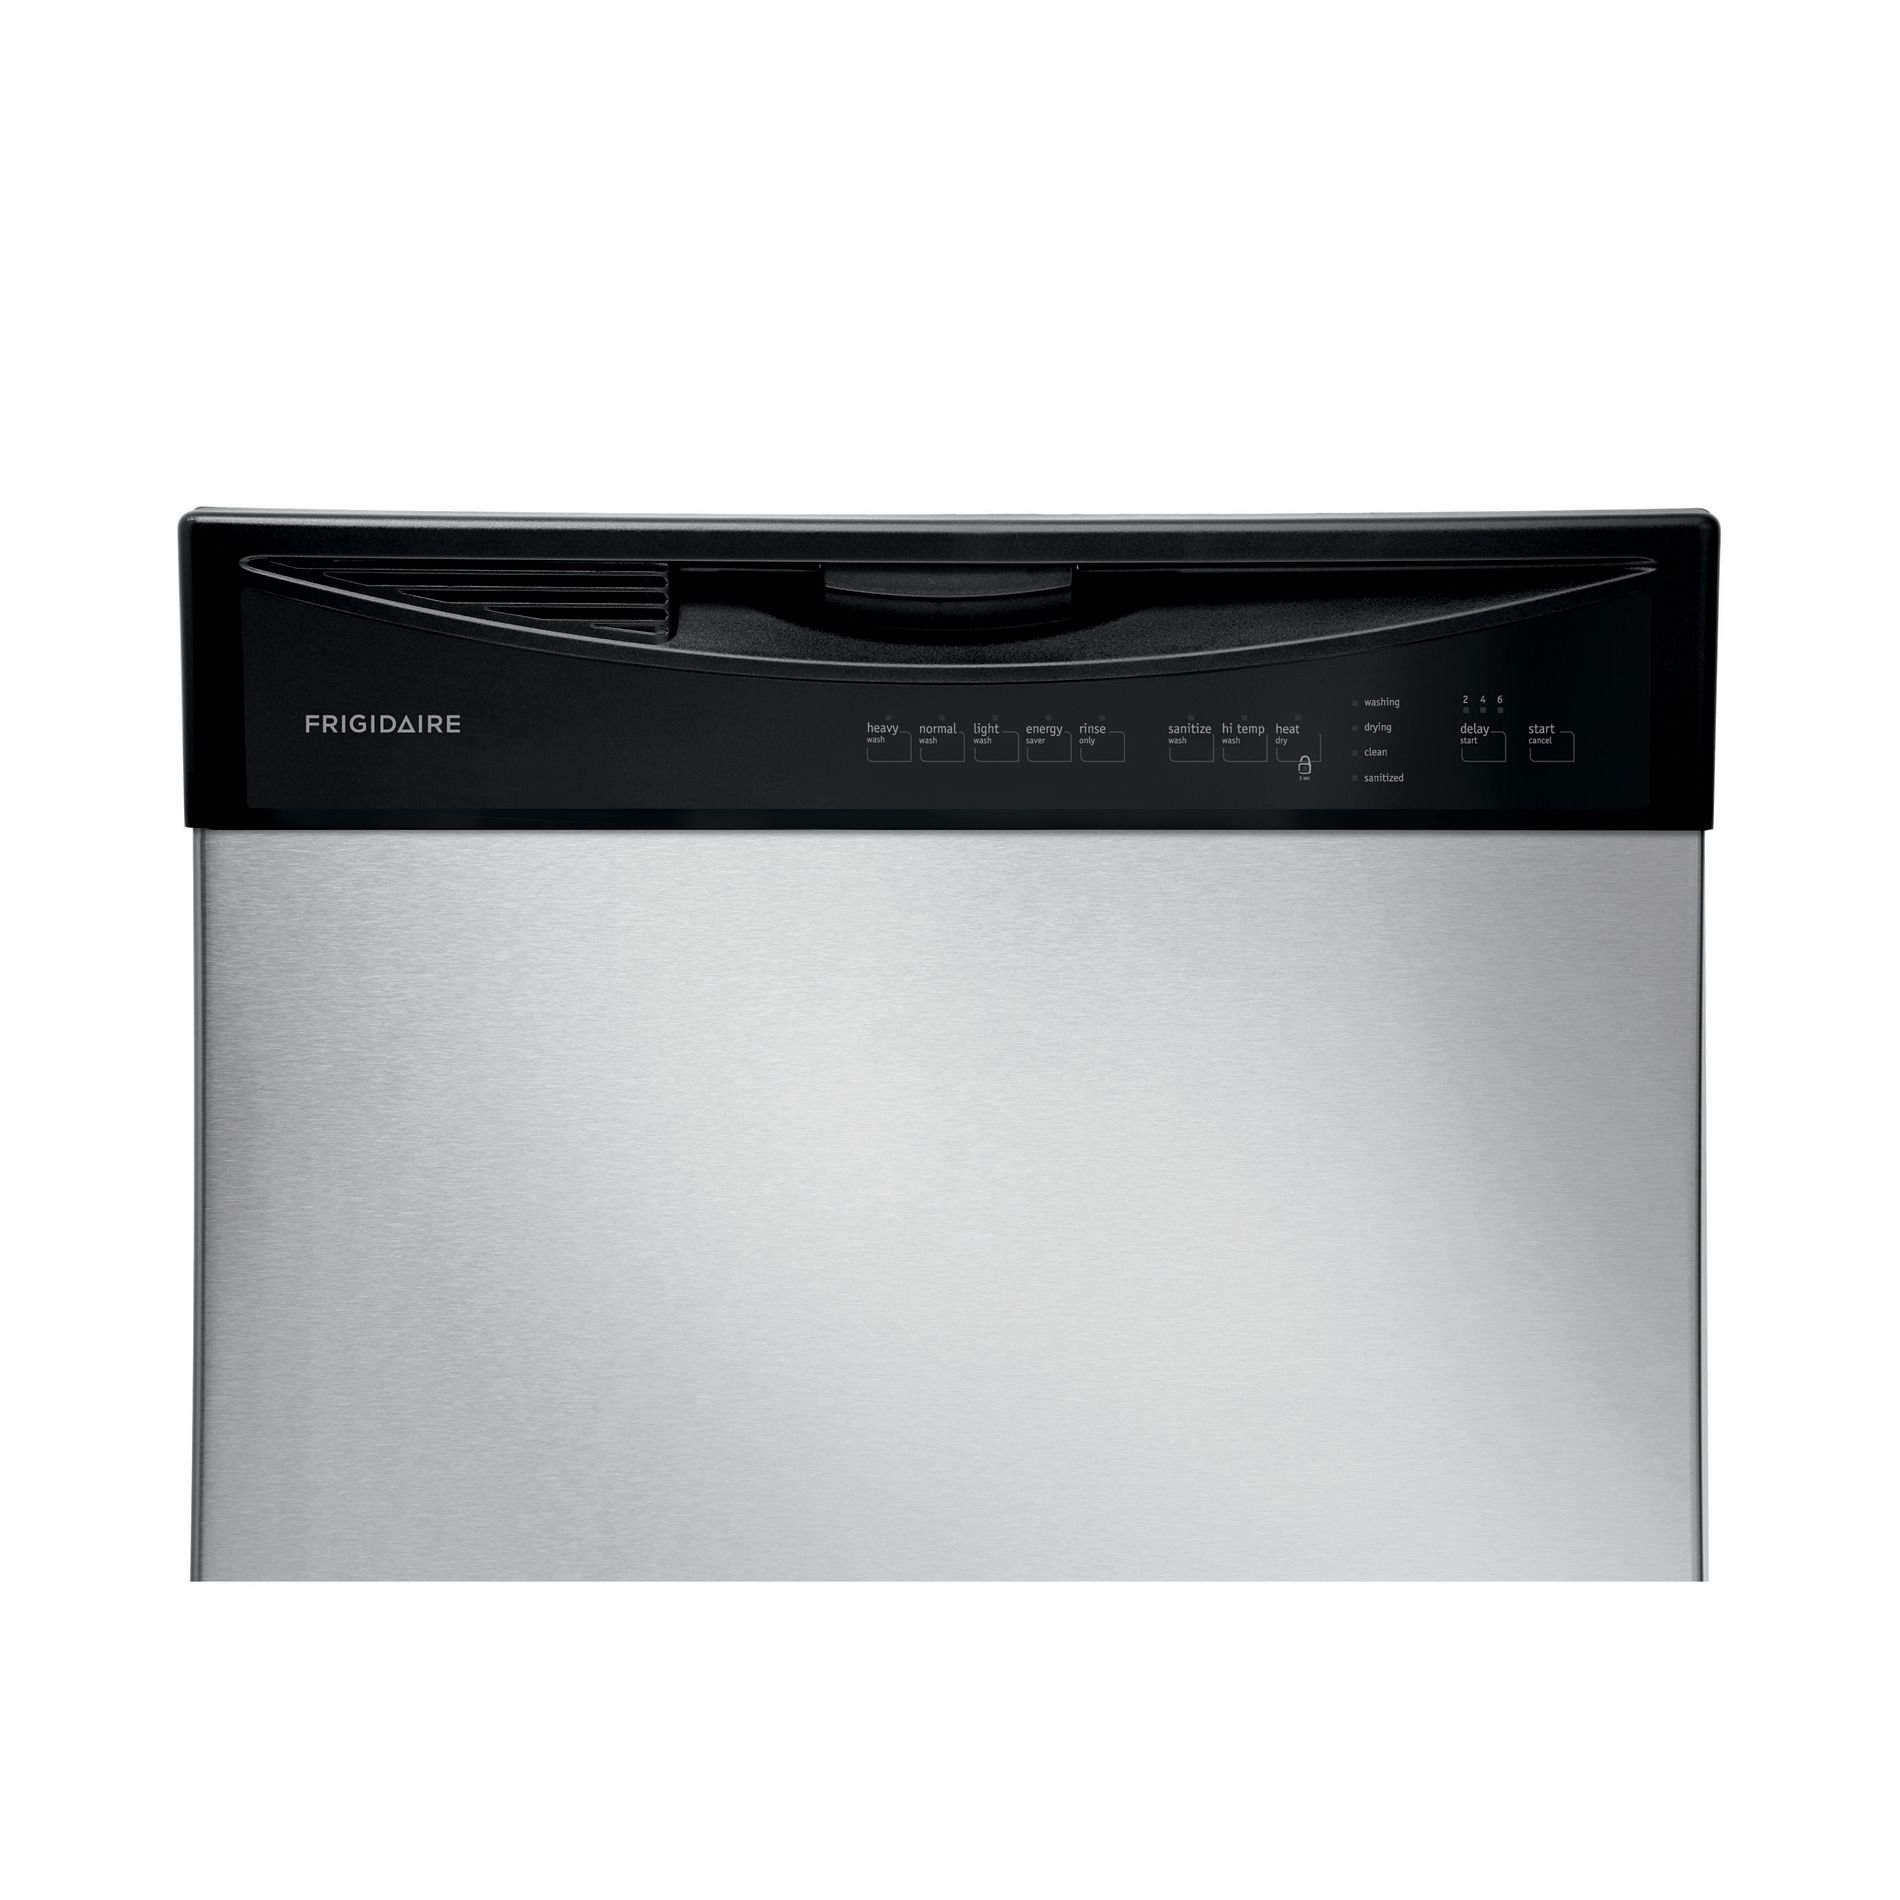 "Frigidaire FFBD2411NS 24"" Stainless Steel Built-In Dishwasher"